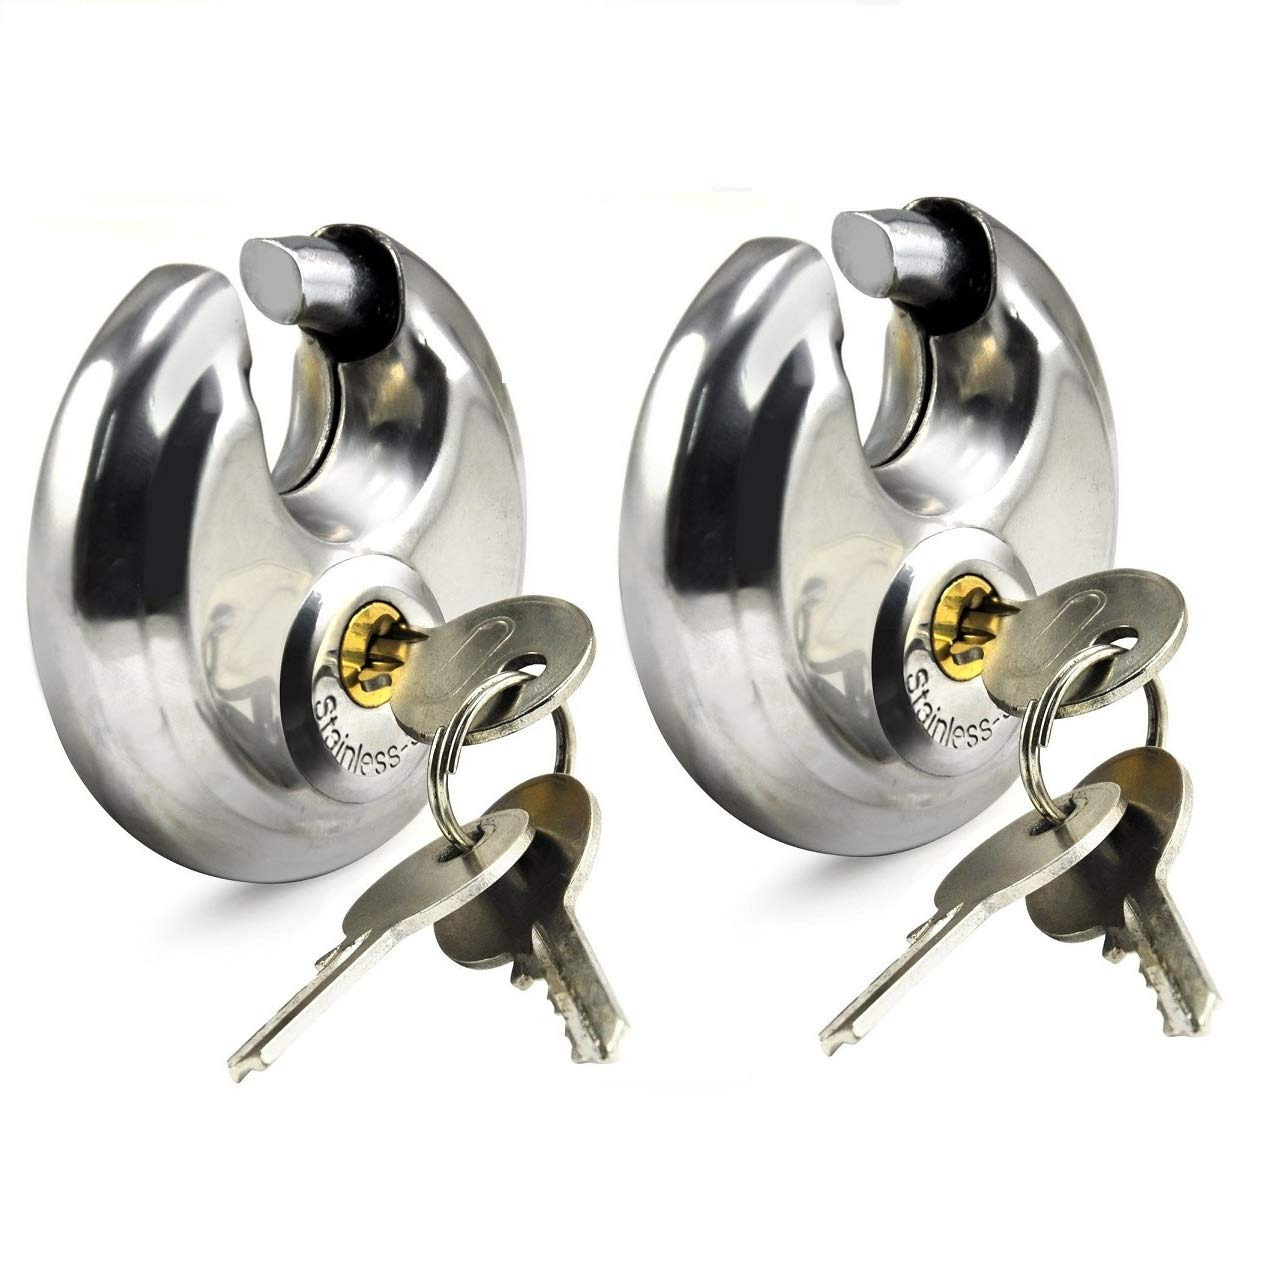 XFORT® 2 Pack Discus Padlocks, 60mm Round Circular Padlocks, Hardened Steel Shackle Enclosed in a Steel Body, Great for Indoor and General Purpose Application on Minimum to Medium Security Items. Maher London Ltd